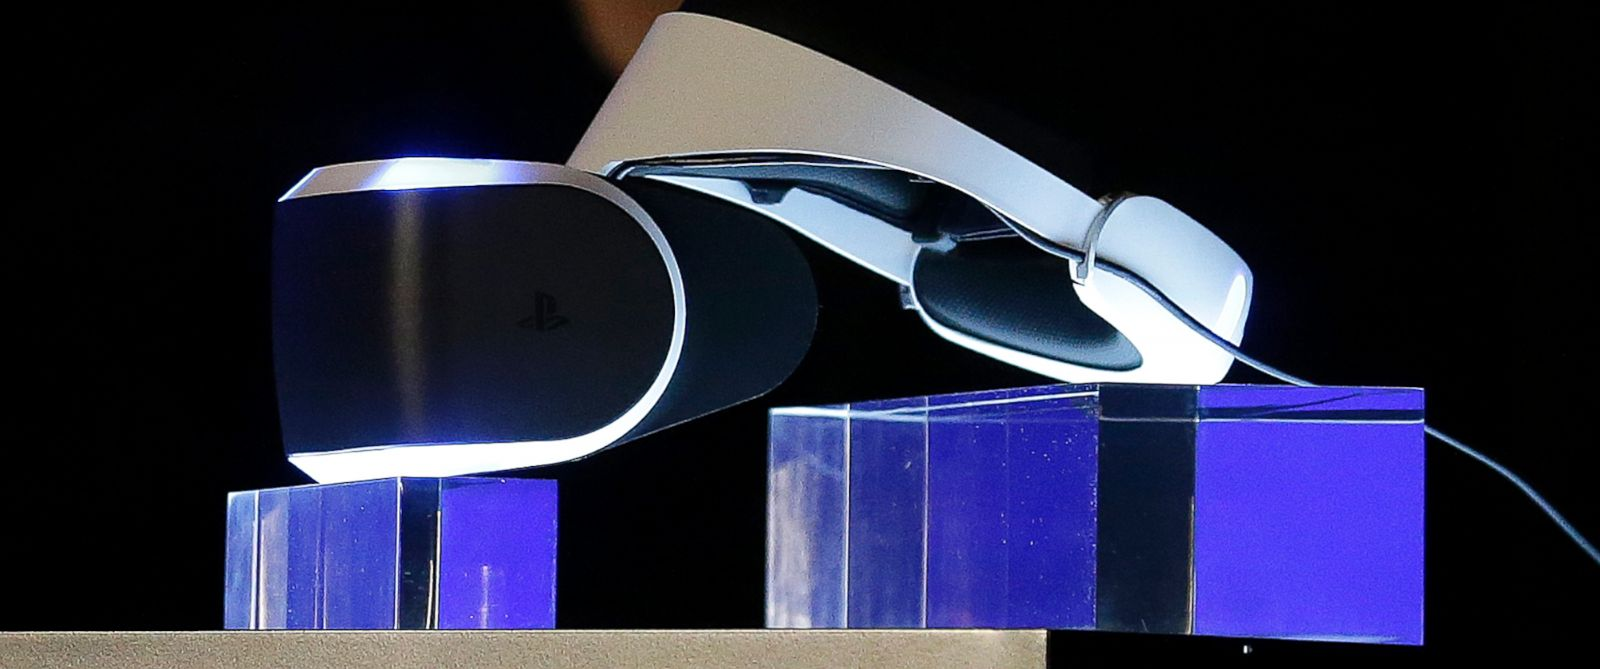 PHOTO: The PlayStation 4 virtual reality headset Project Morpheus is shown at the Game Developers Conference 2014 in San Francisco, Calif. on March 18, 2014.